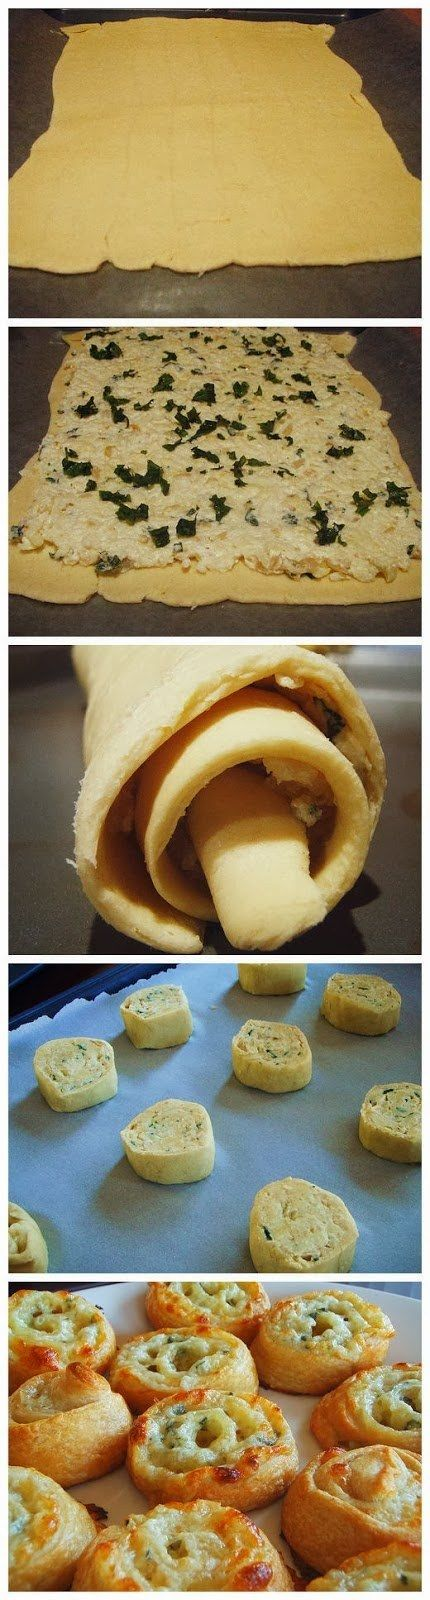 Easy Three-Cheese Pinwheel Appetizers | 23 Adorable Pinwheel Foods To Make For Someone You Love